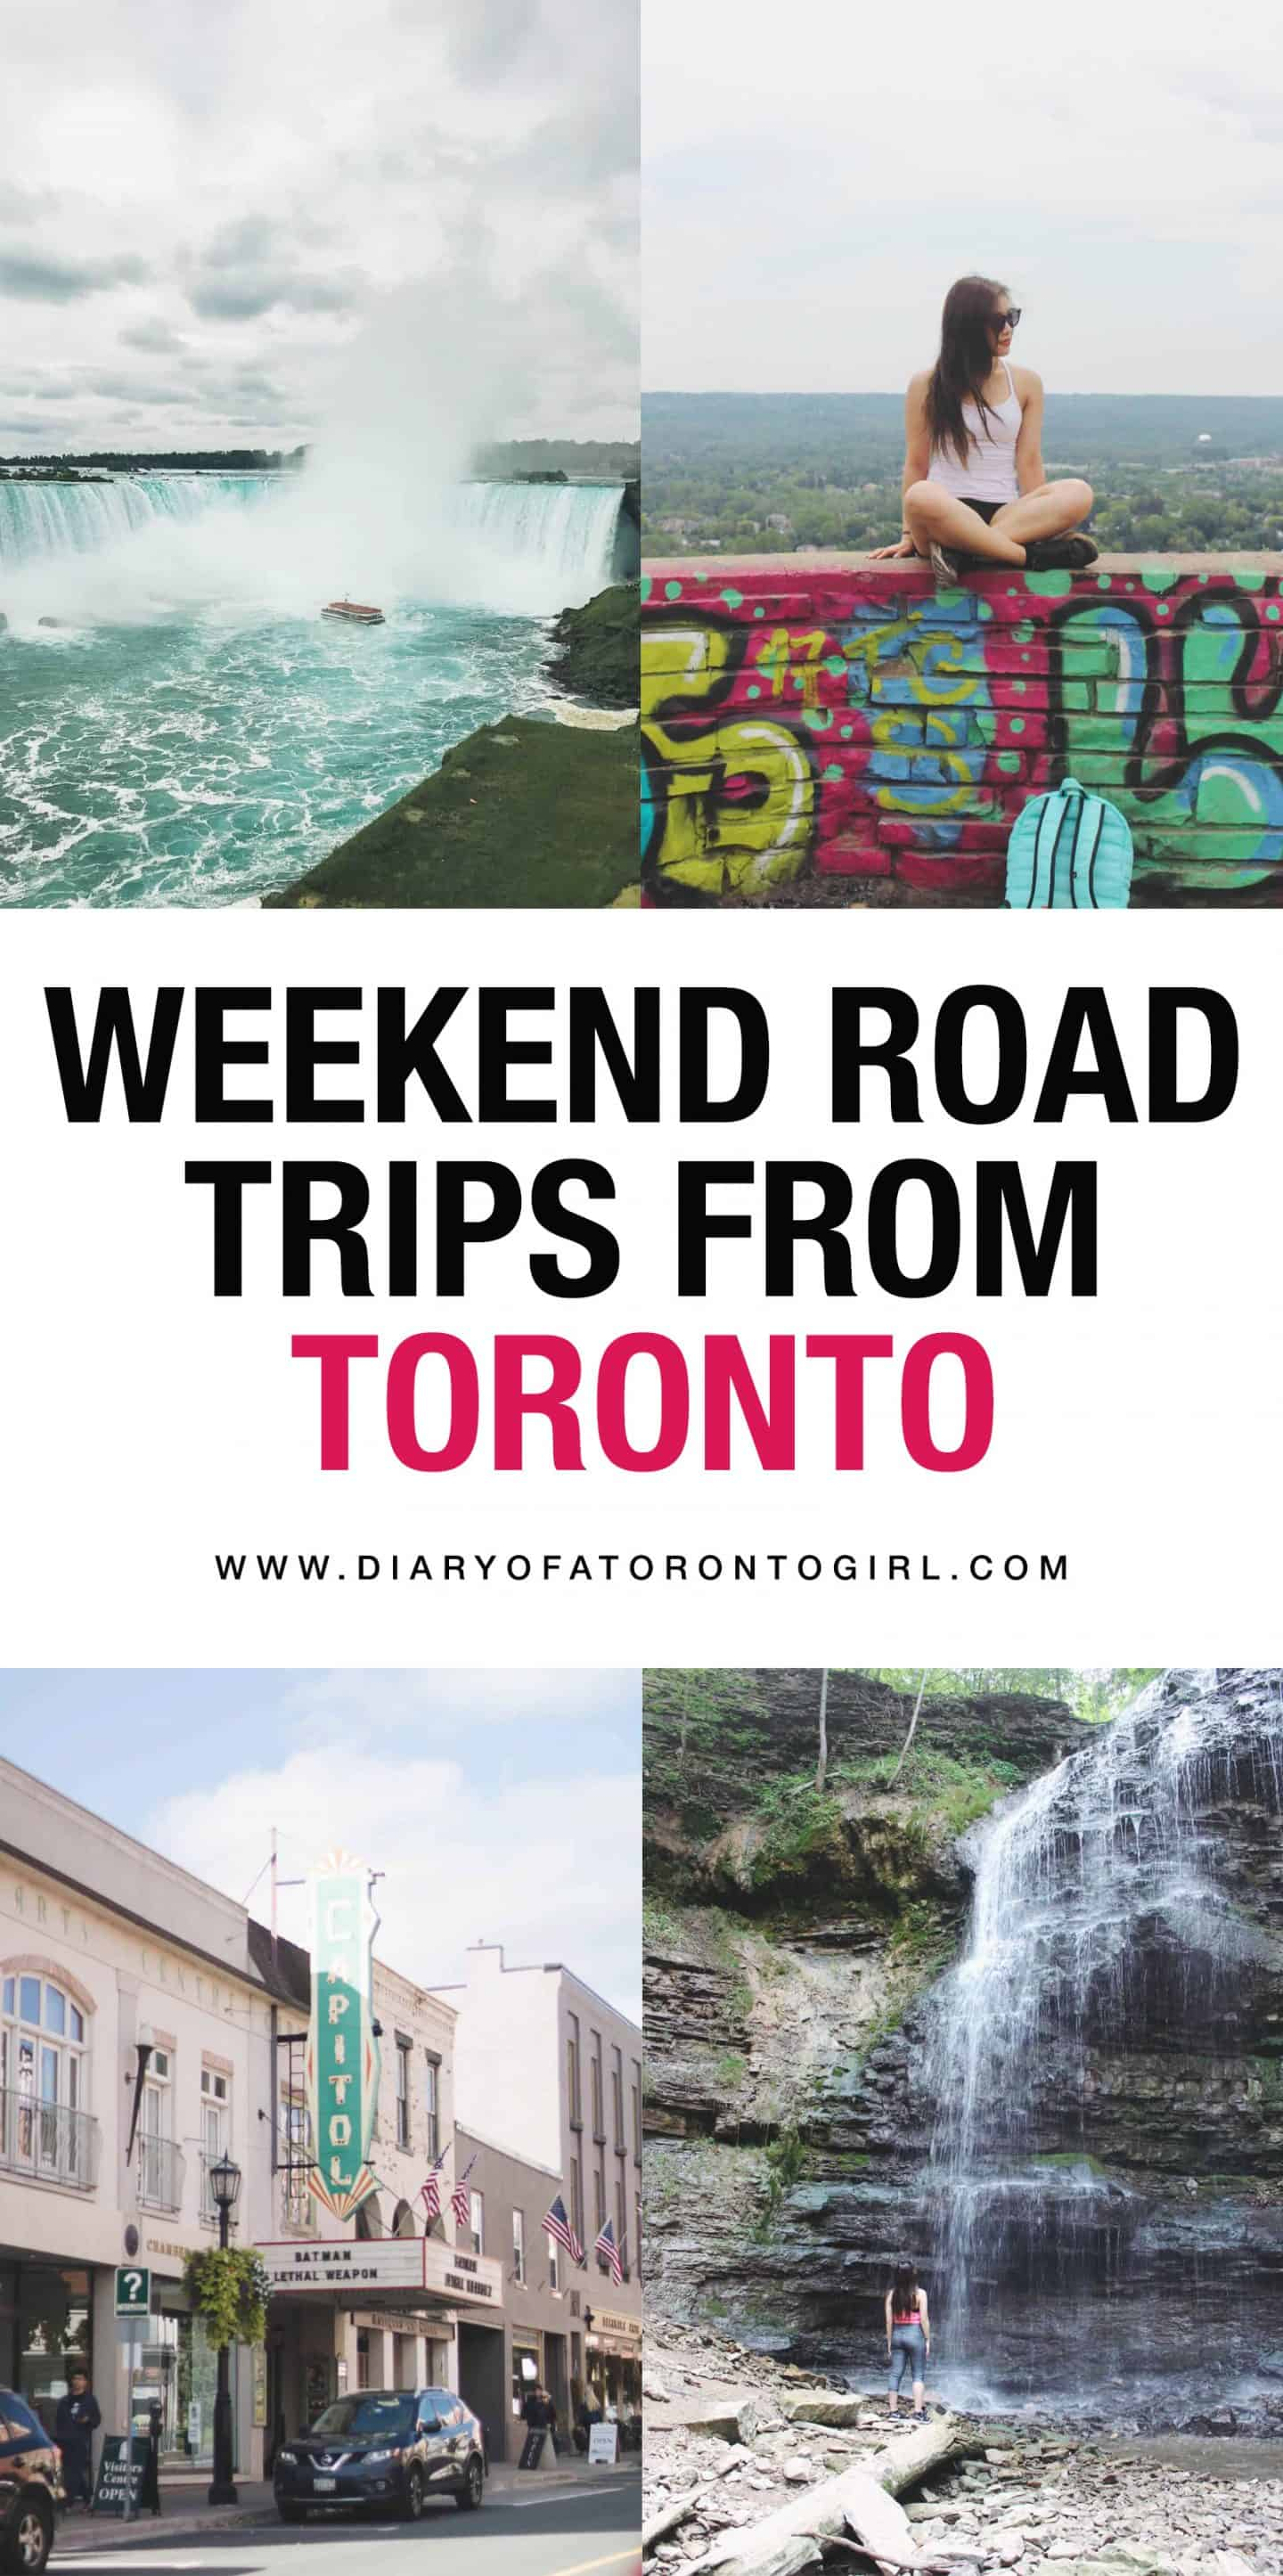 Weekend road trips from Toronto to go on this summer, whether you're looking to do a last minute getaway or plan an extravagant escape!